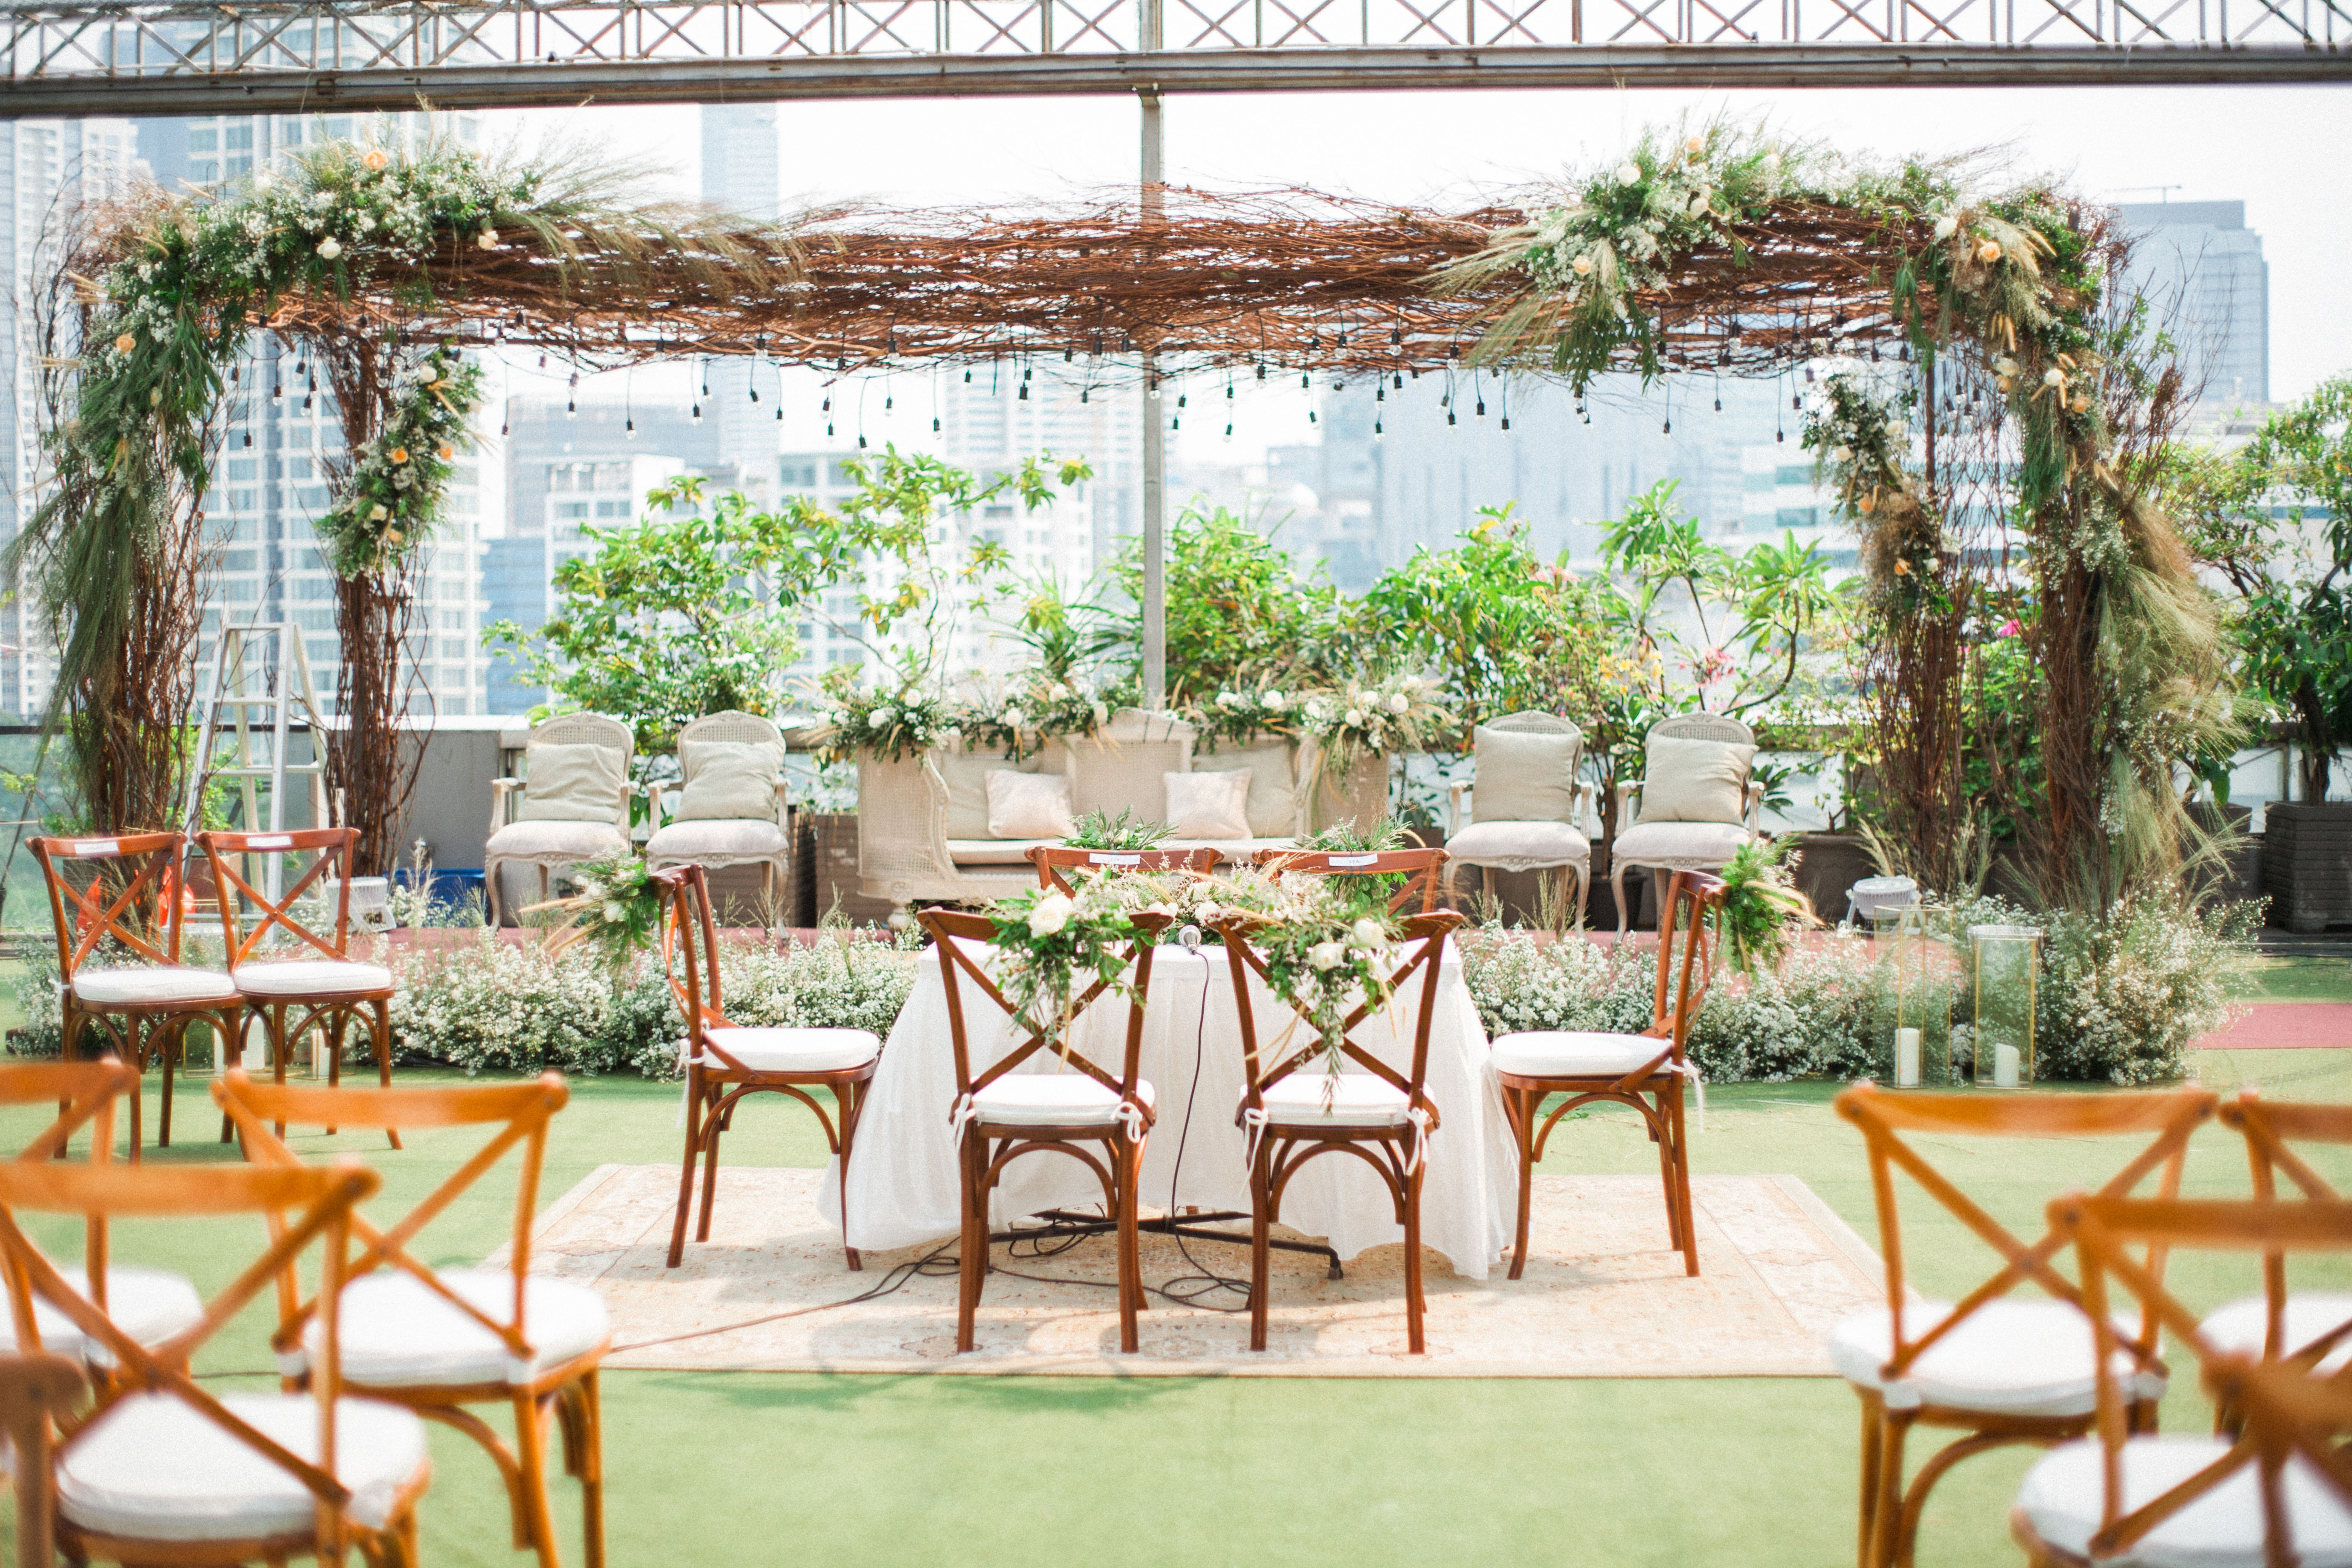 Tying the knot at this Semioutdoor venue in Jakarta di